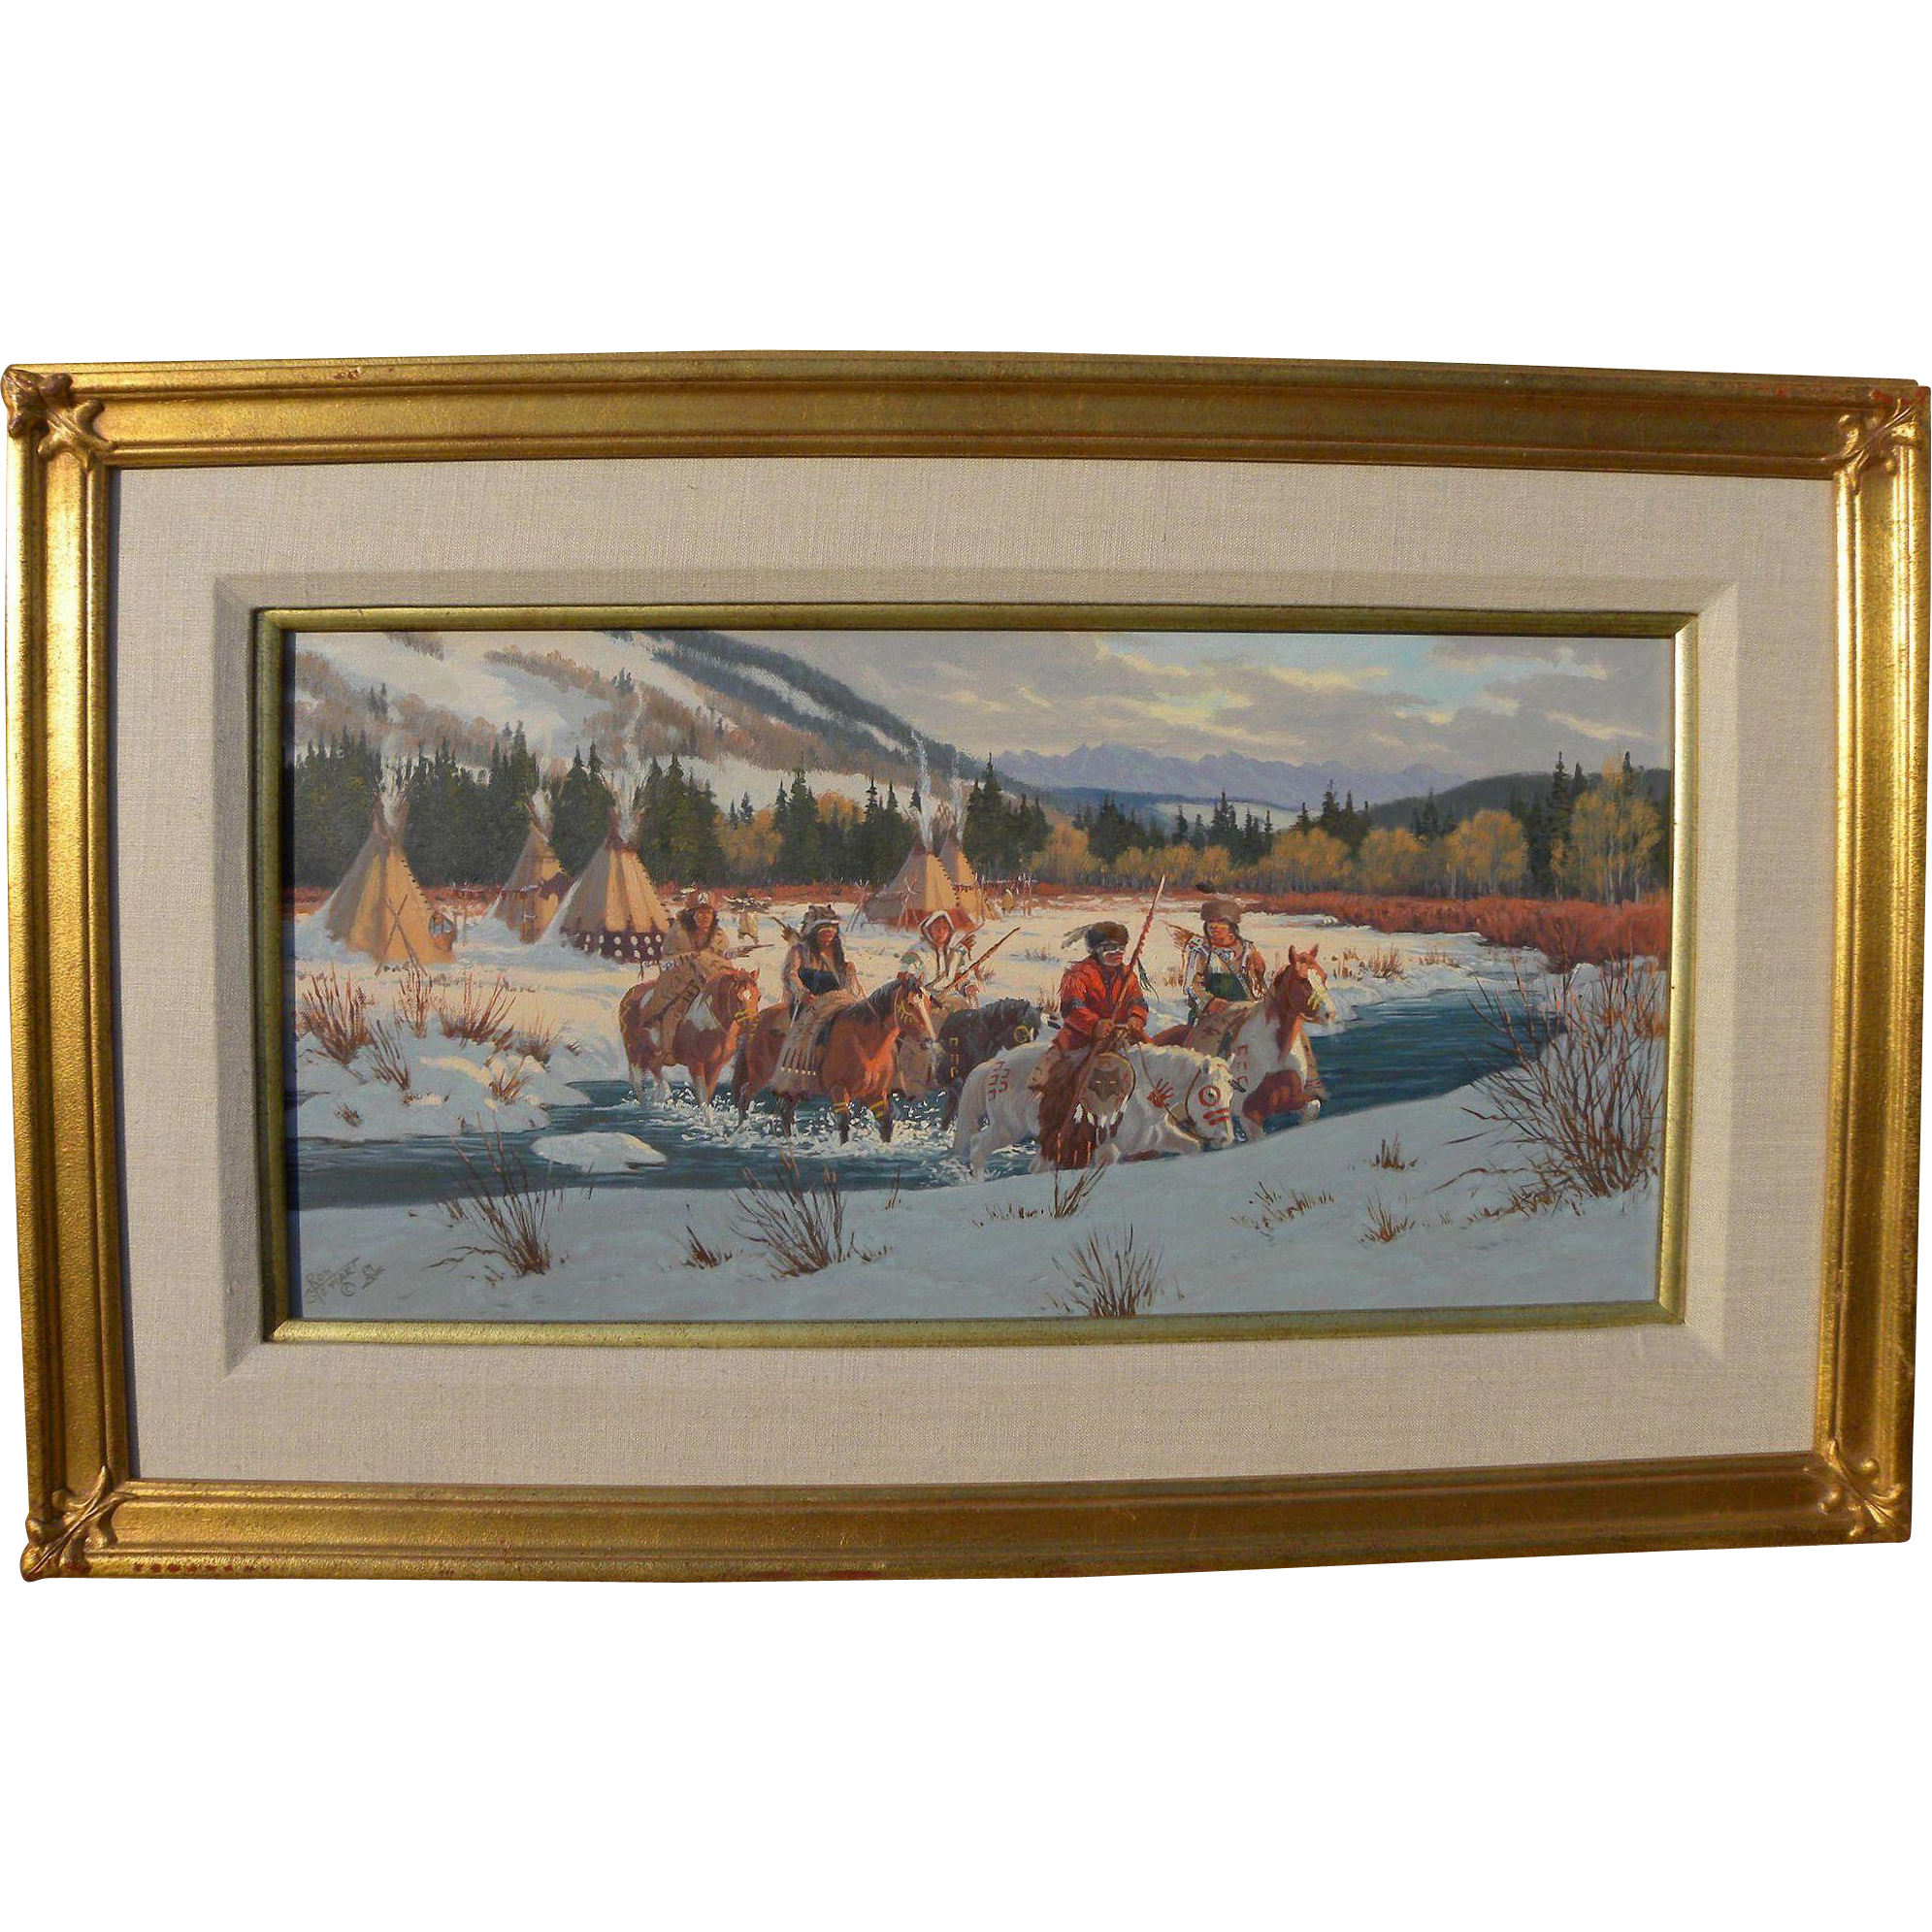 RON STEWART (1941-) oil painting of Blackeet warriors in winter landscape by noted contemporary western artist